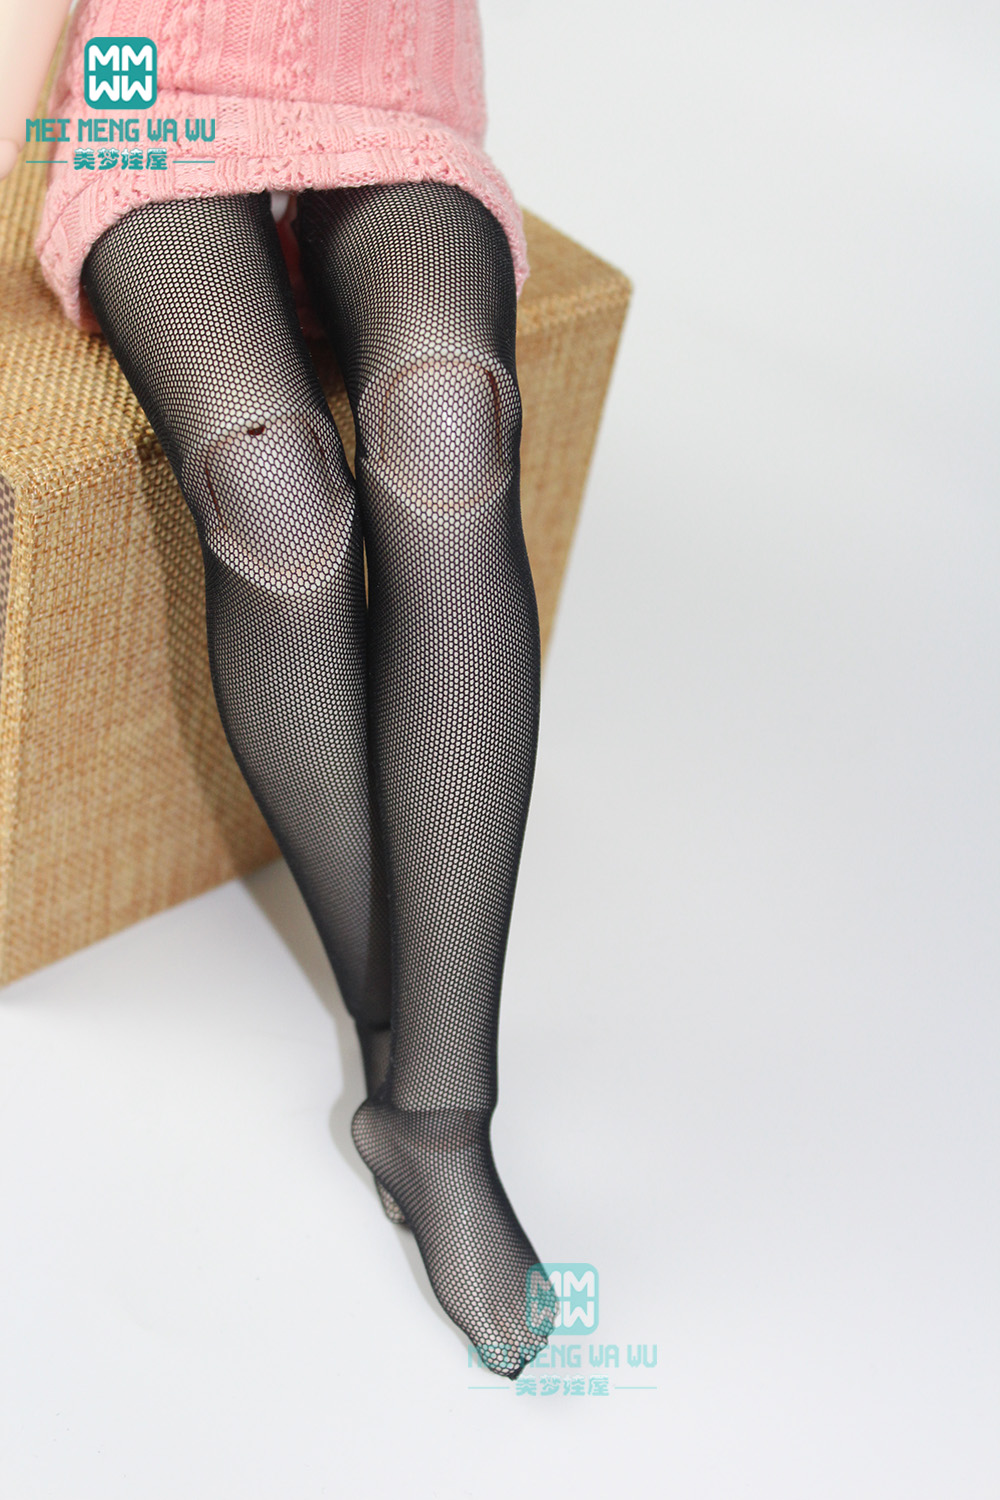 BJD Accessories For 1/3 1/4 1/6 BJD SD DD Doll Fashion Lace Stockings, Striped Socks, Mesh Socks